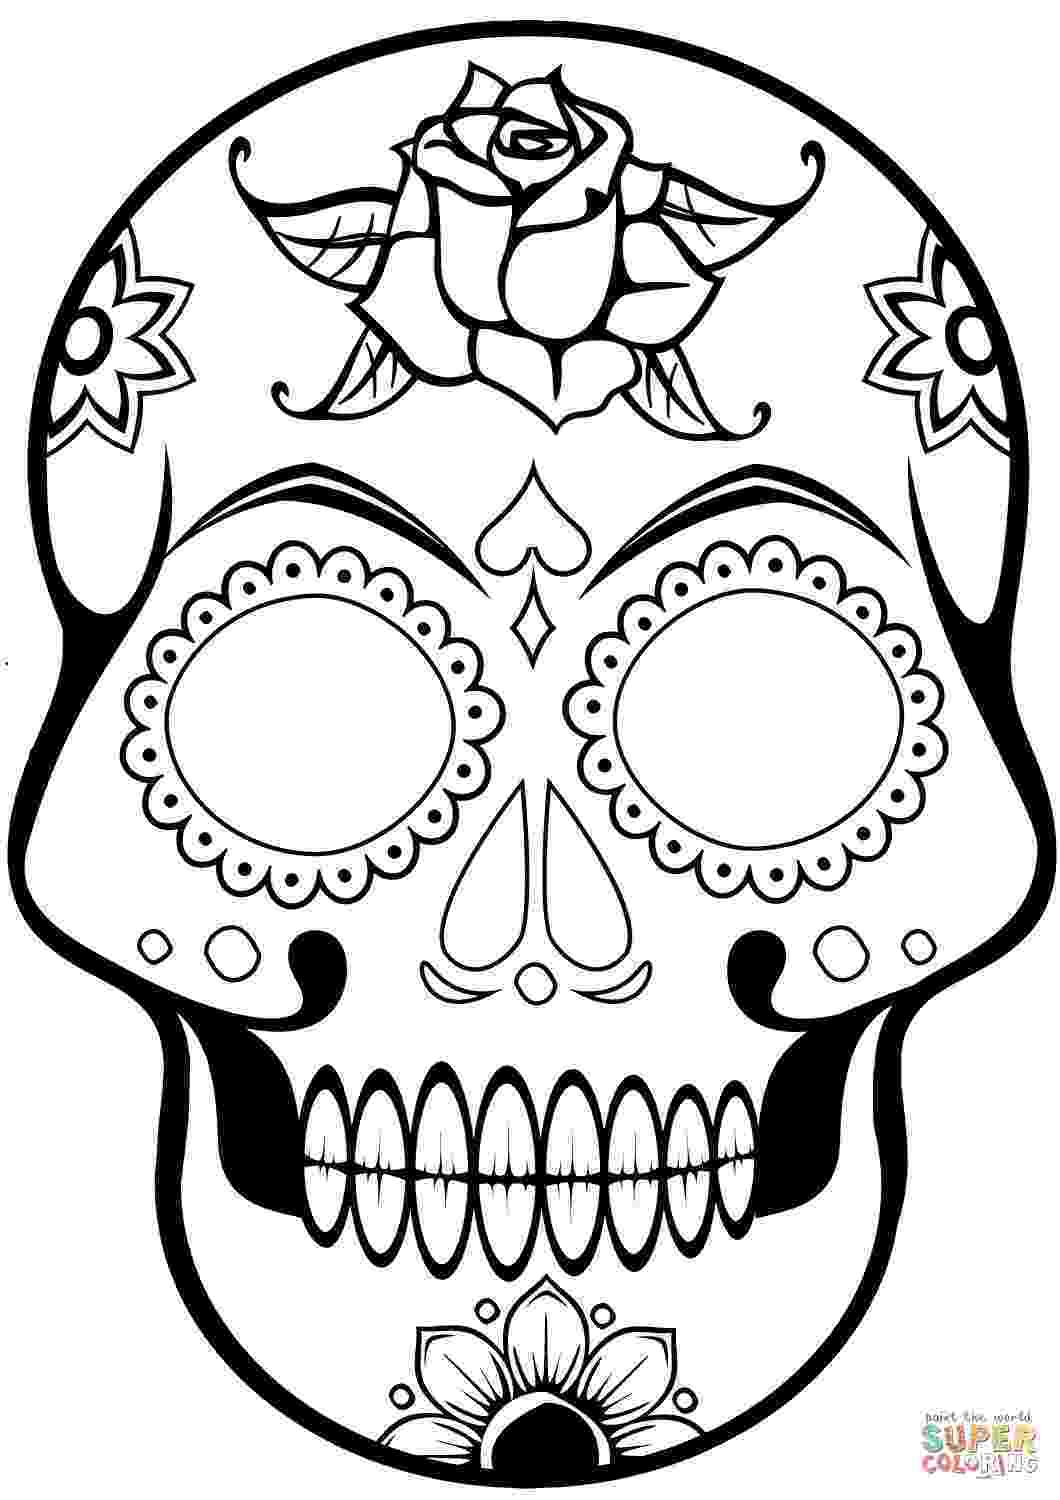 day of the dead printable pictures day of the dead lesson plan with printables modern art 4 the dead of printable day pictures